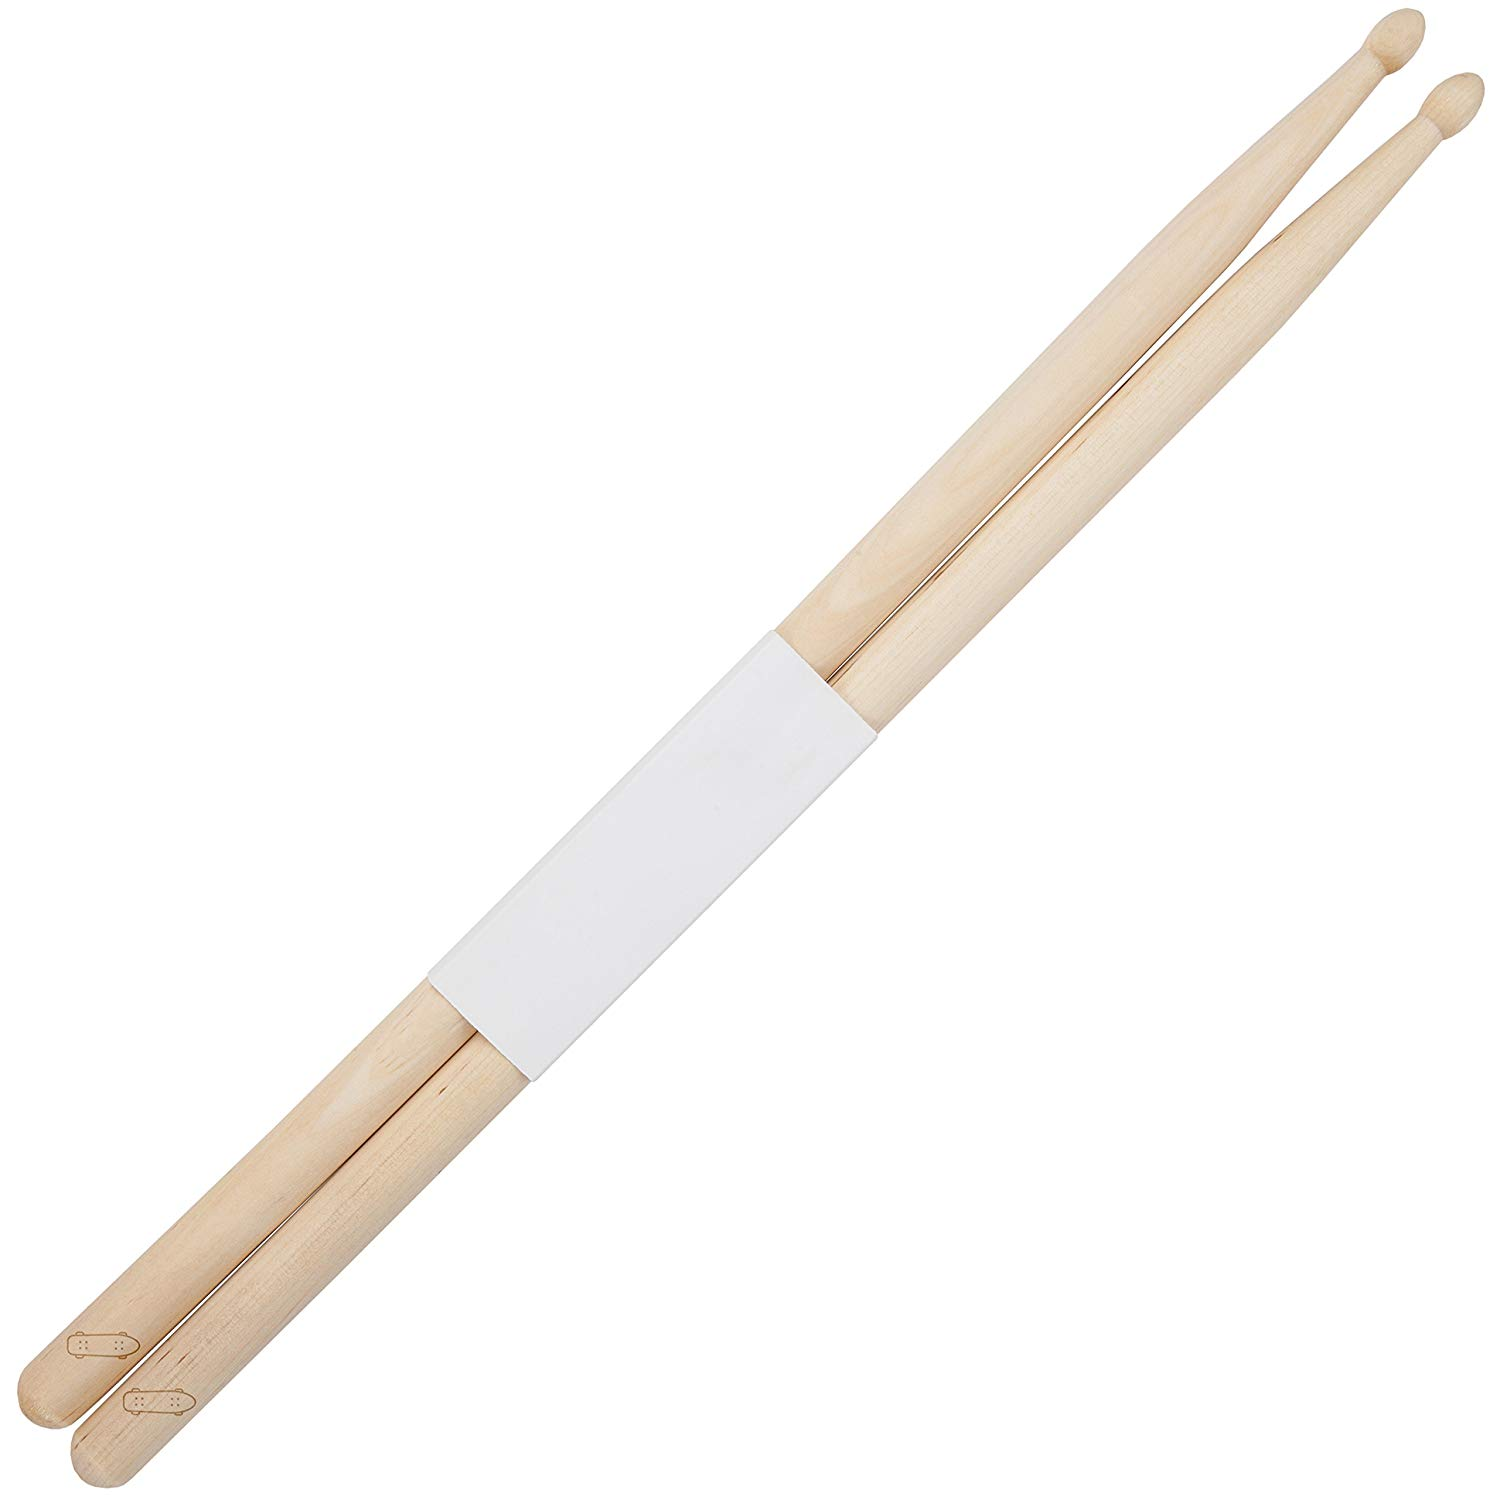 Skateboard 5B Maple Drumsticks With Laser Engraved Design - Durable Drumstick Set With Wooden Tip - Wood Drumsticks Gift